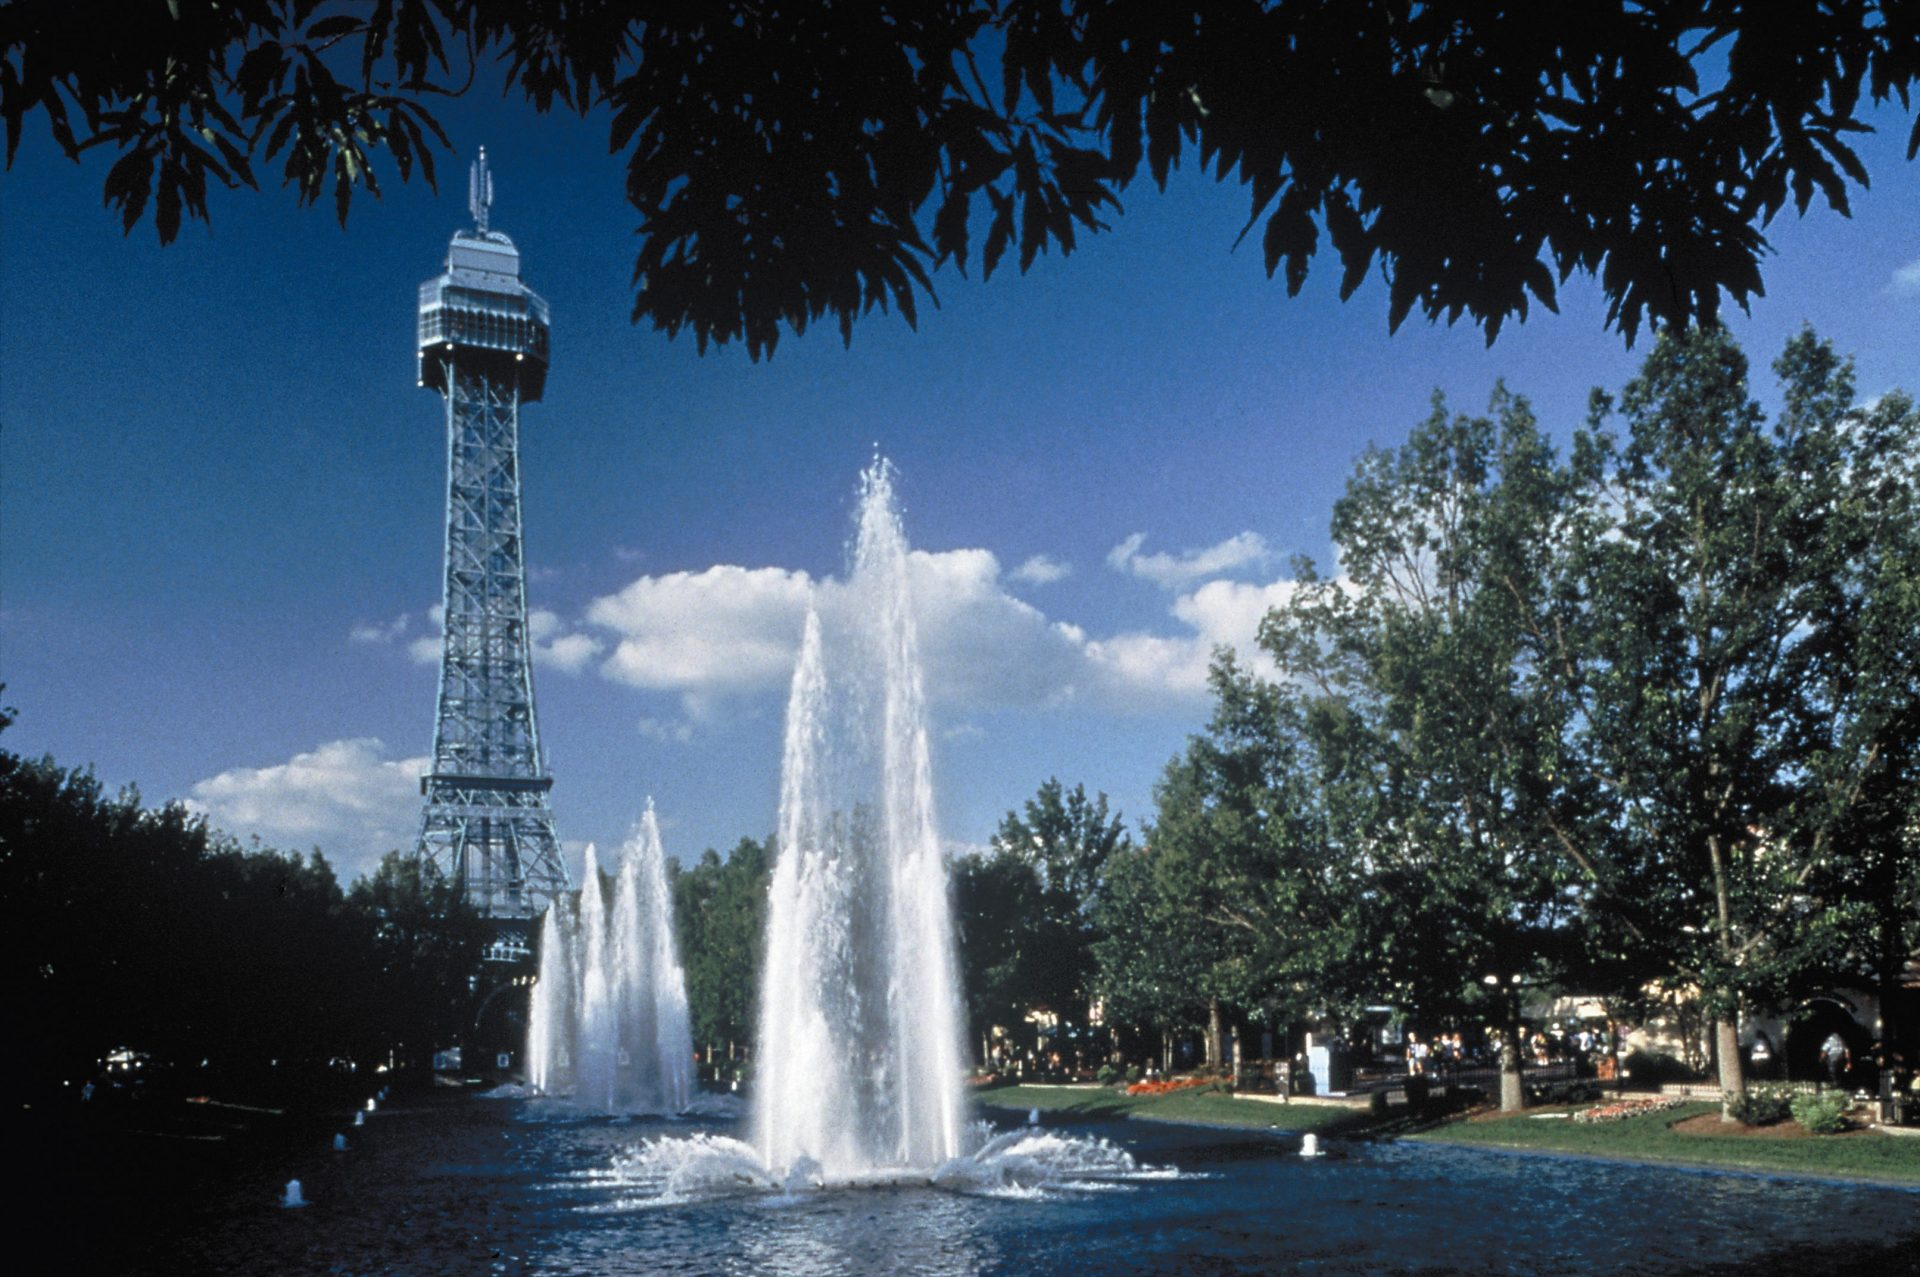 Eiffel tower with fountains in front at Kings Dominion